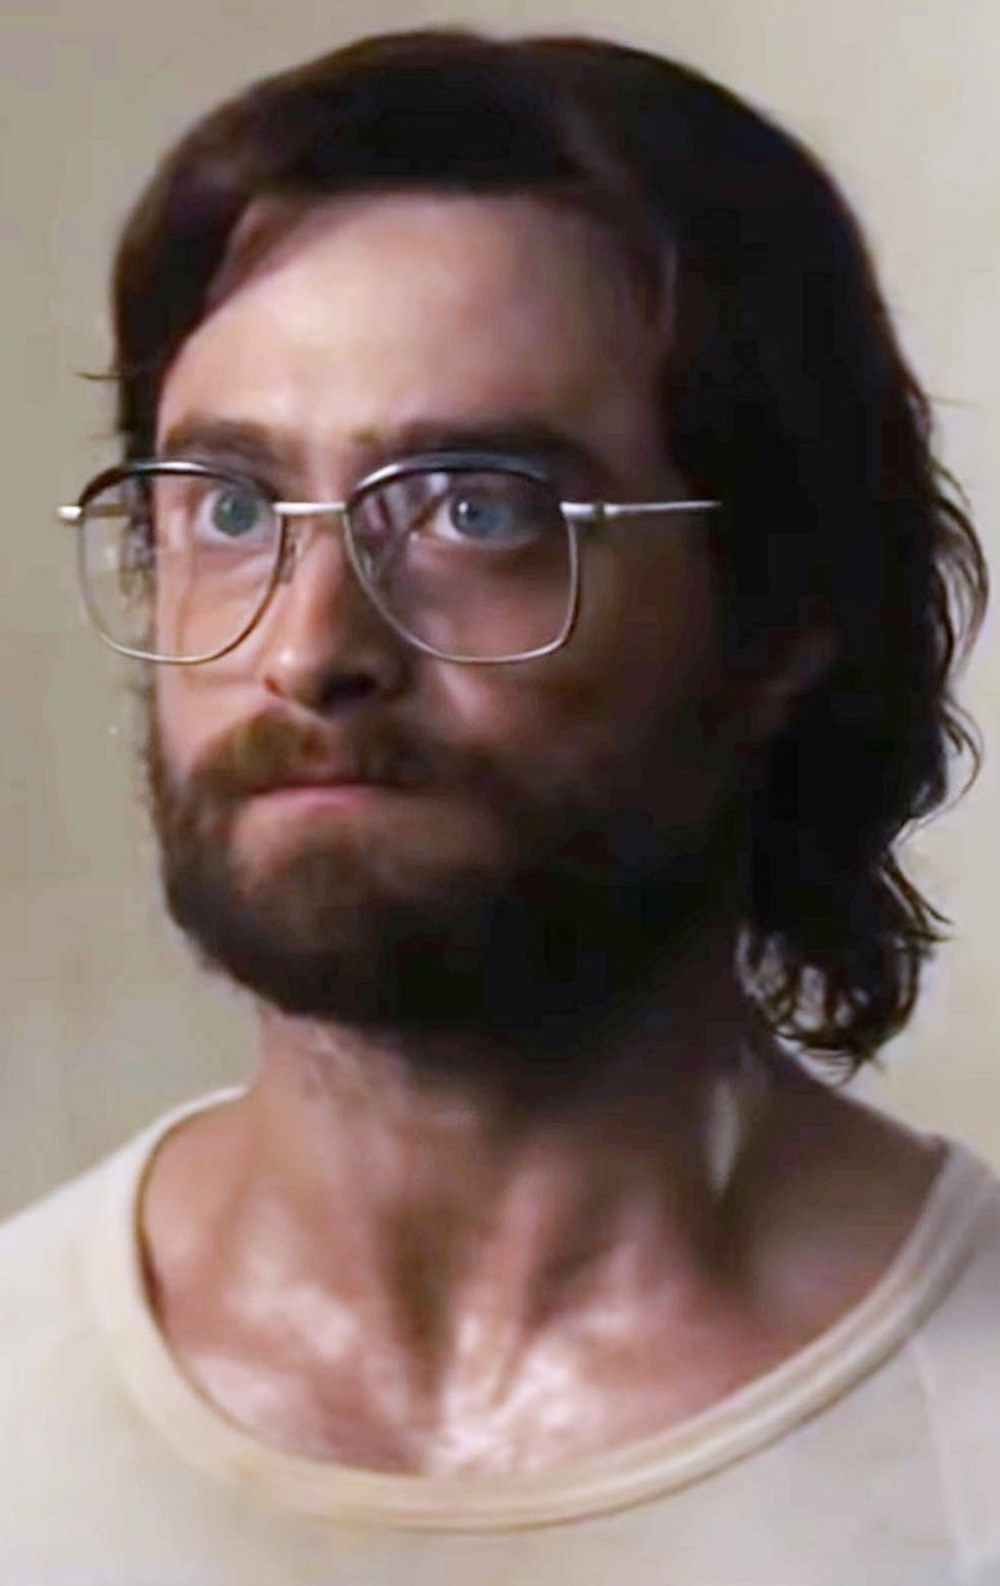 Daniel Radcliffe with long hair, a beard, oversized glasses, while sweating in a shirt